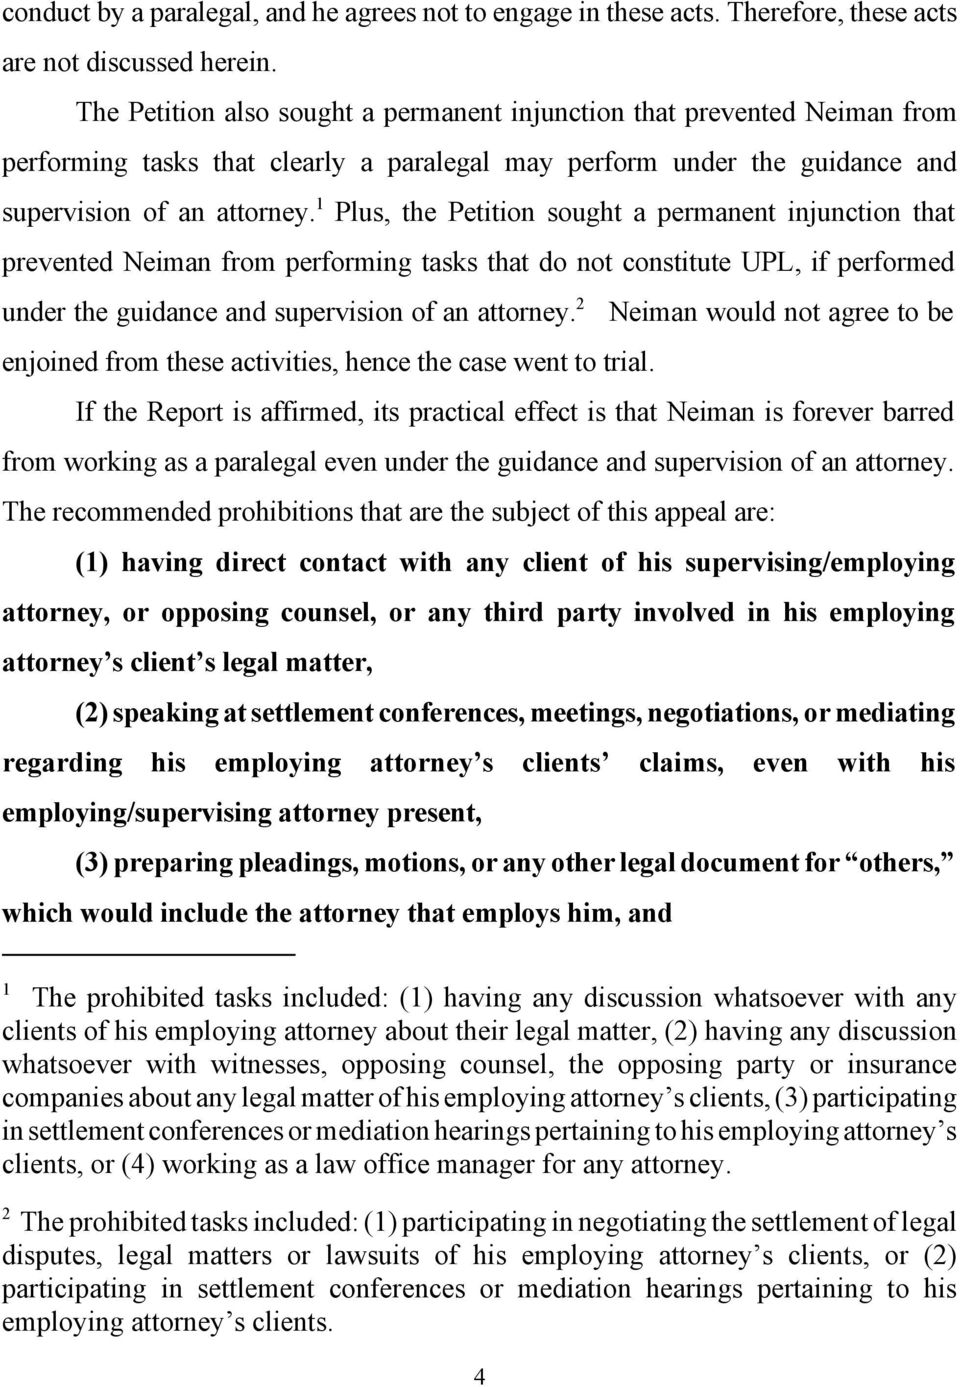 1 Plus, the Petition sought a permanent injunction that prevented Neiman from performing tasks that do not constitute UPL, if performed under the guidance and supervision of an attorney.